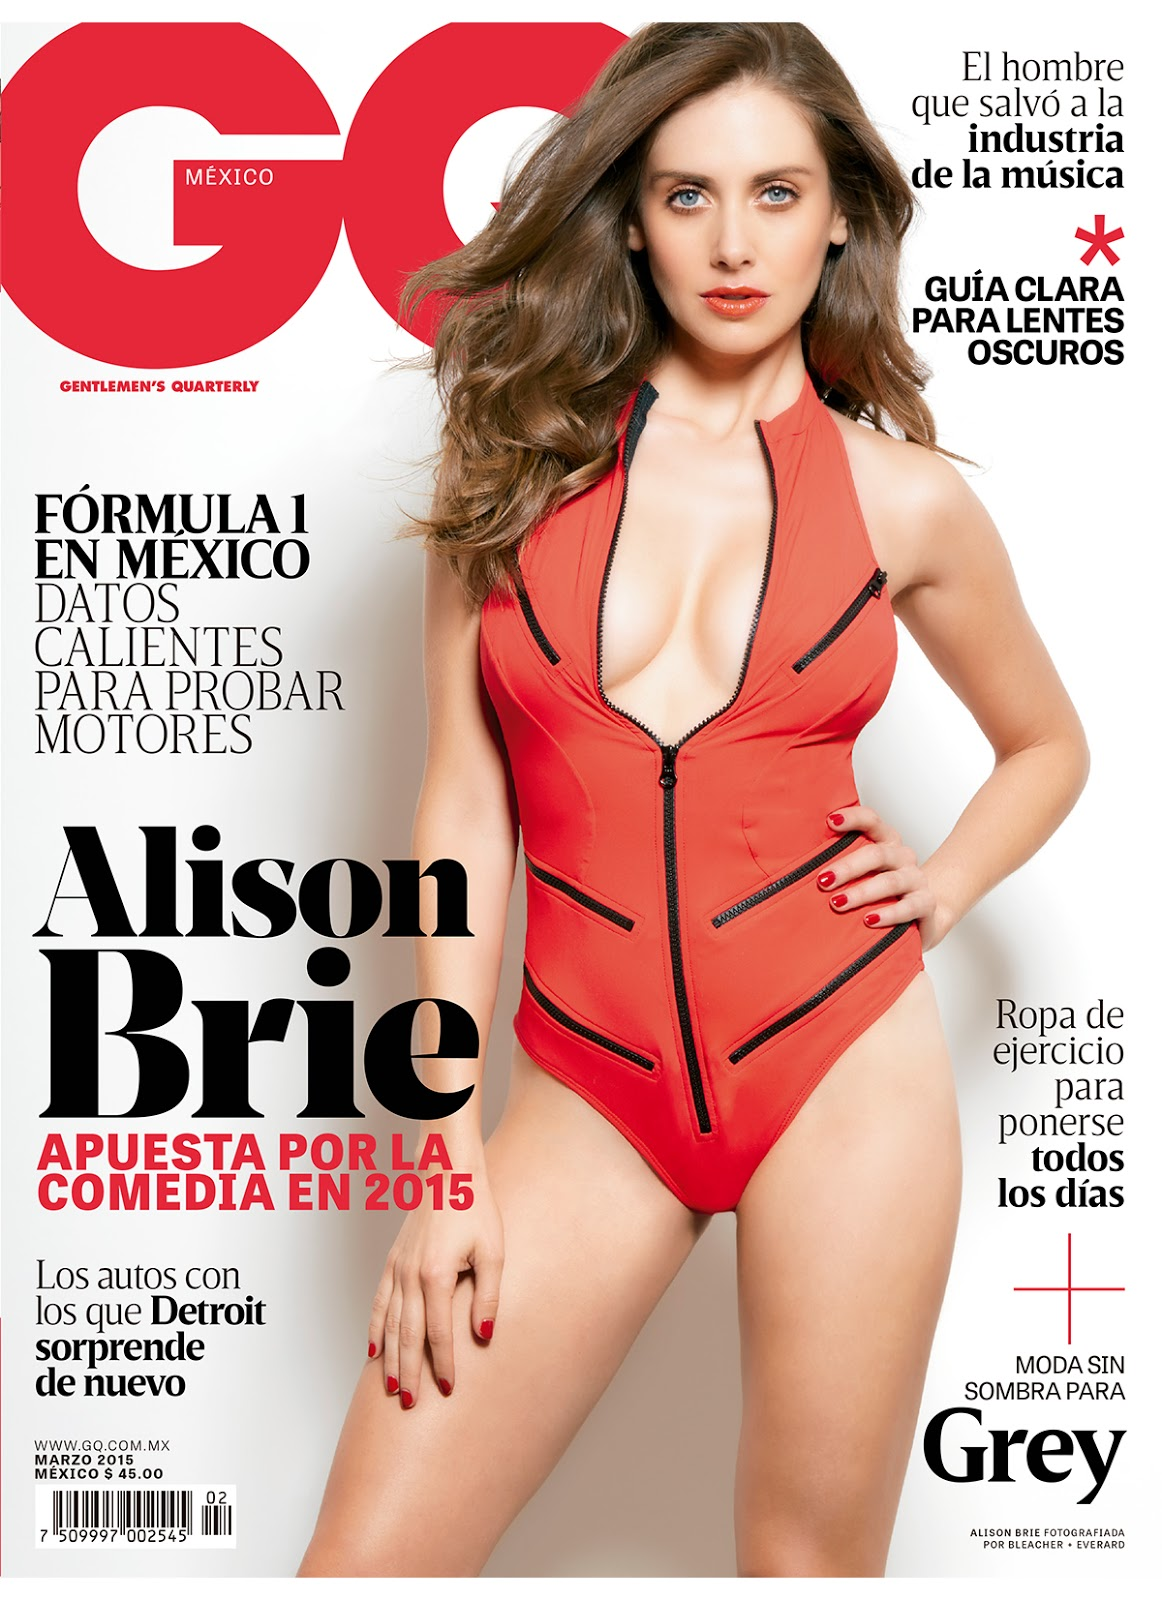 Alison Brie covers GQ Mexico March 2015 in a low-cut swim suit